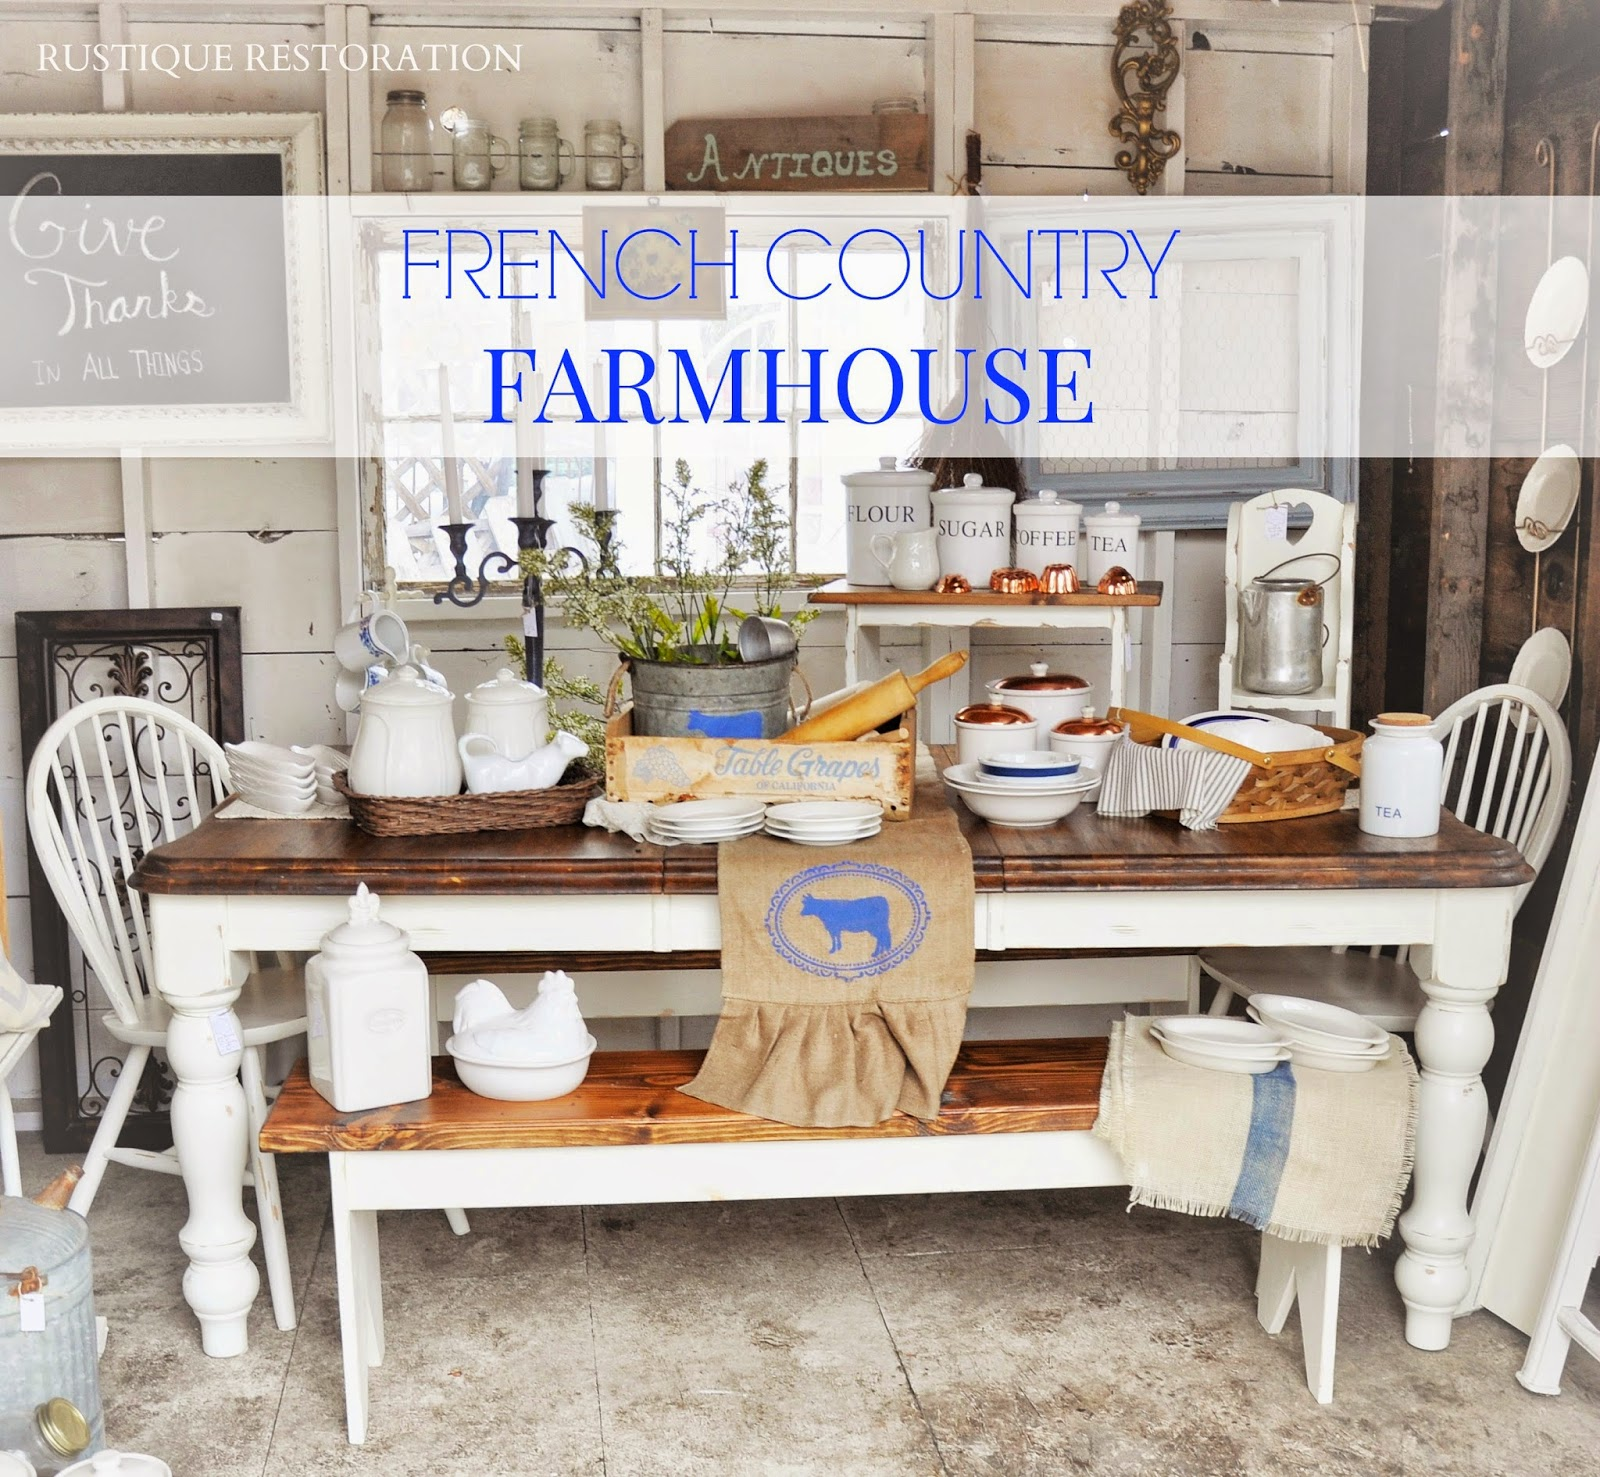 My French Country Farmhouse Table And Decor I M In Love Hope You Had Fun Looking At Gallery Of Pictures There Were A Lot